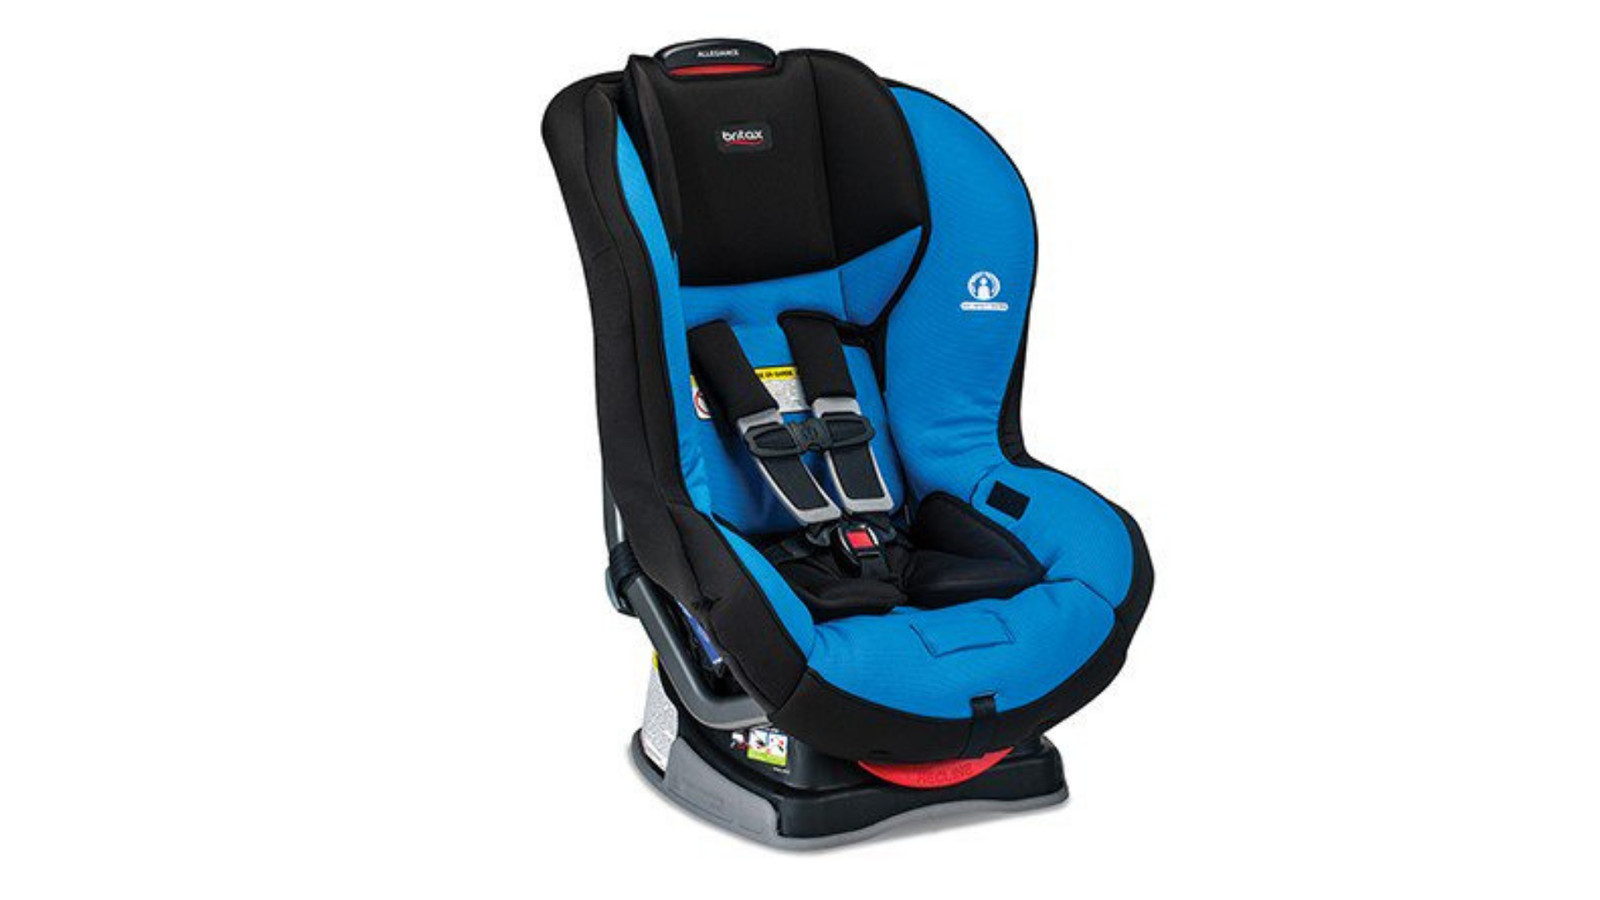 Trade in Your Old Car Seats This Month at Target